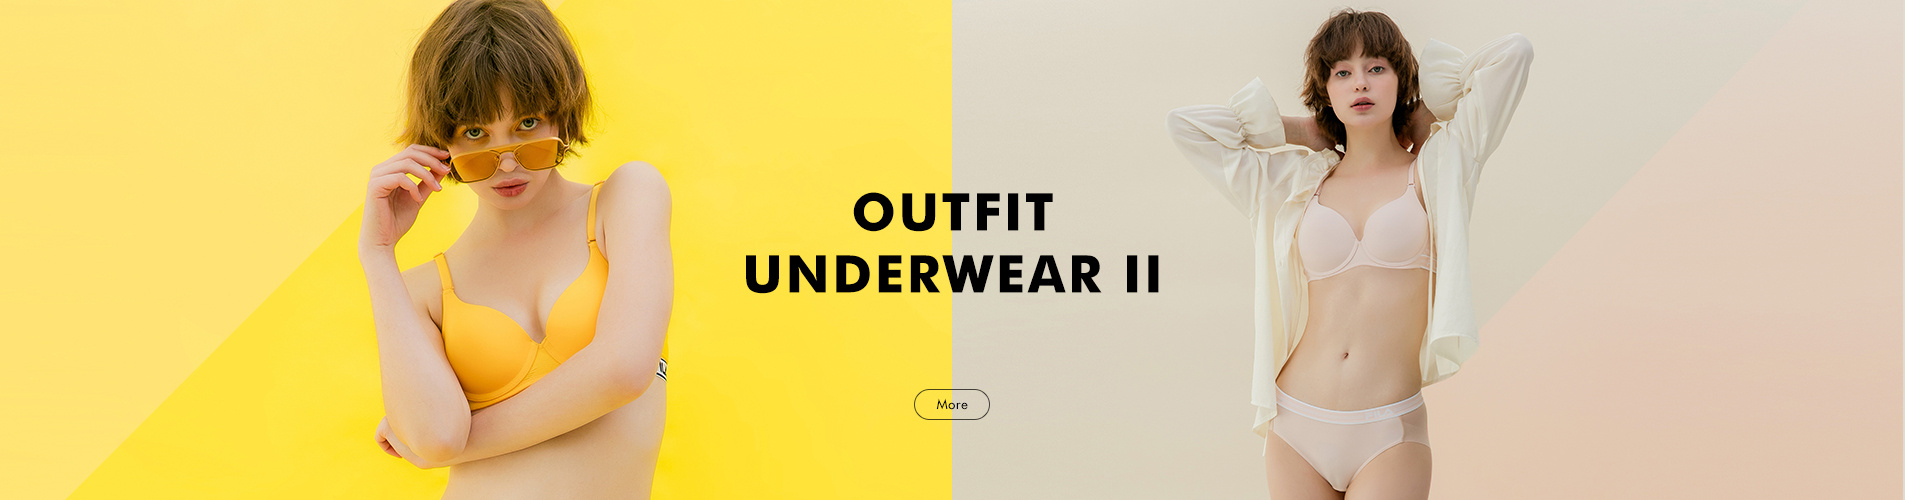 OUTFIT UNDERWEAR II mobile